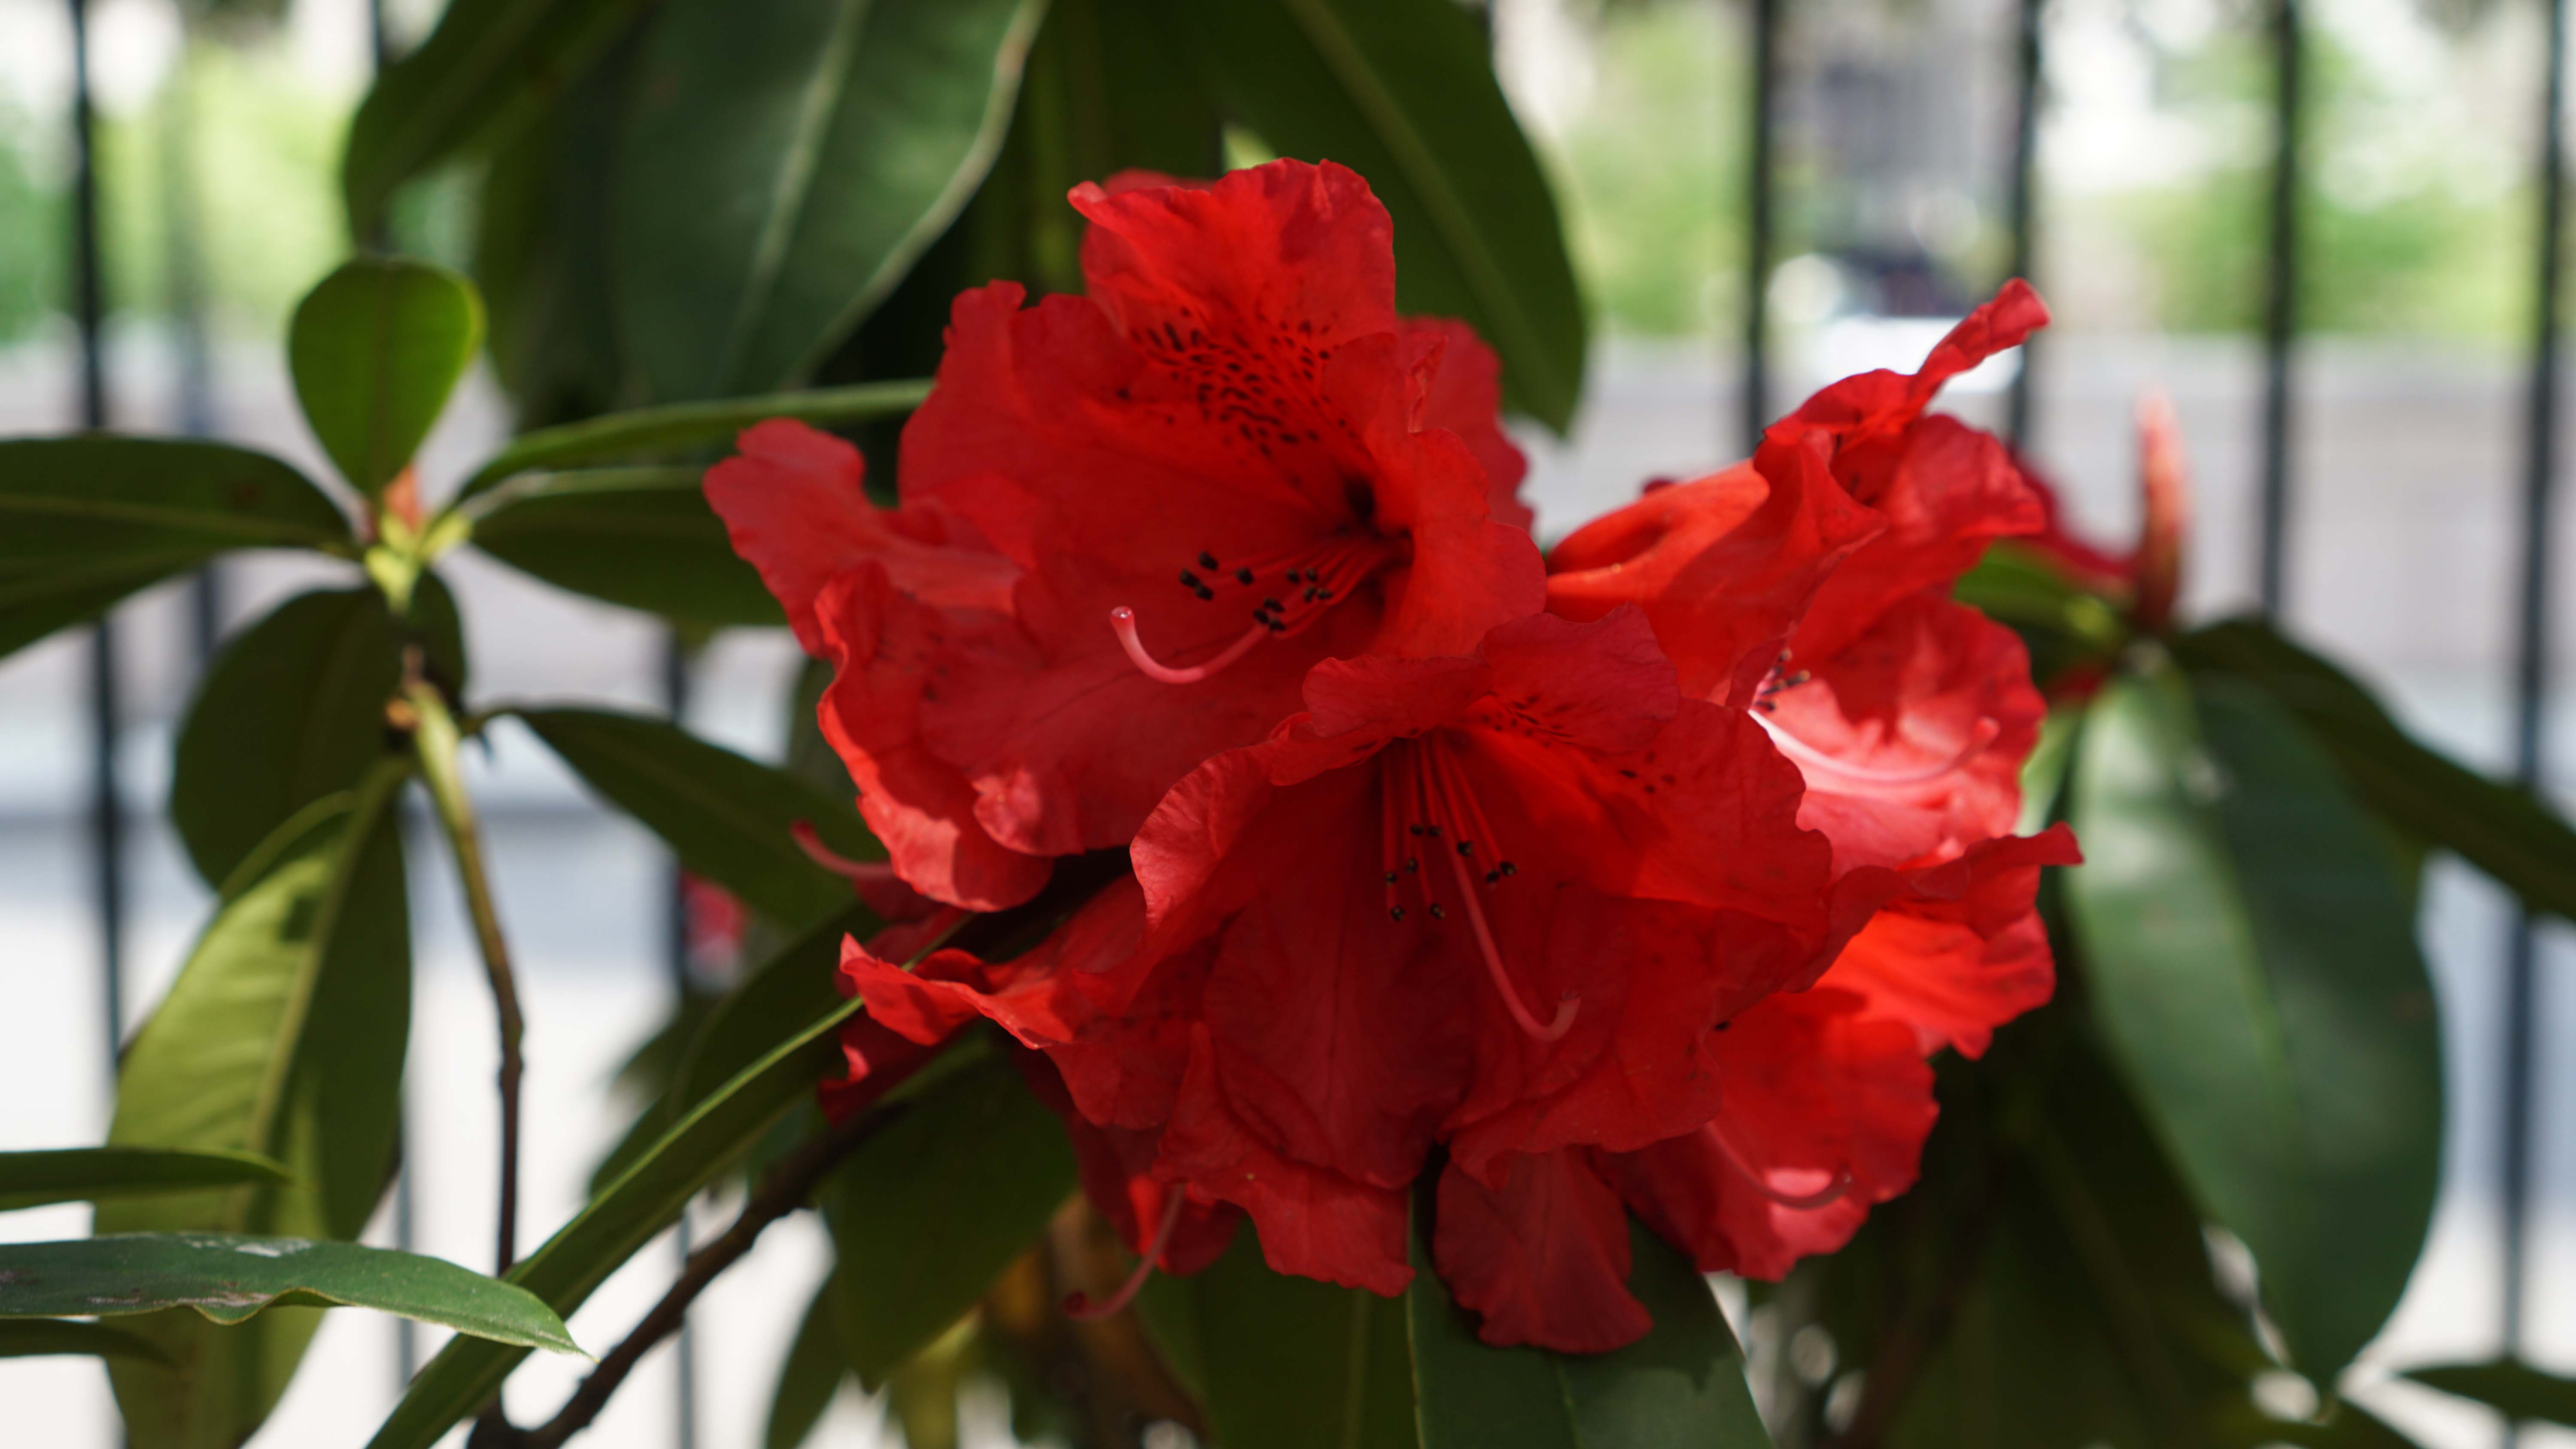 Red rhodedendron close